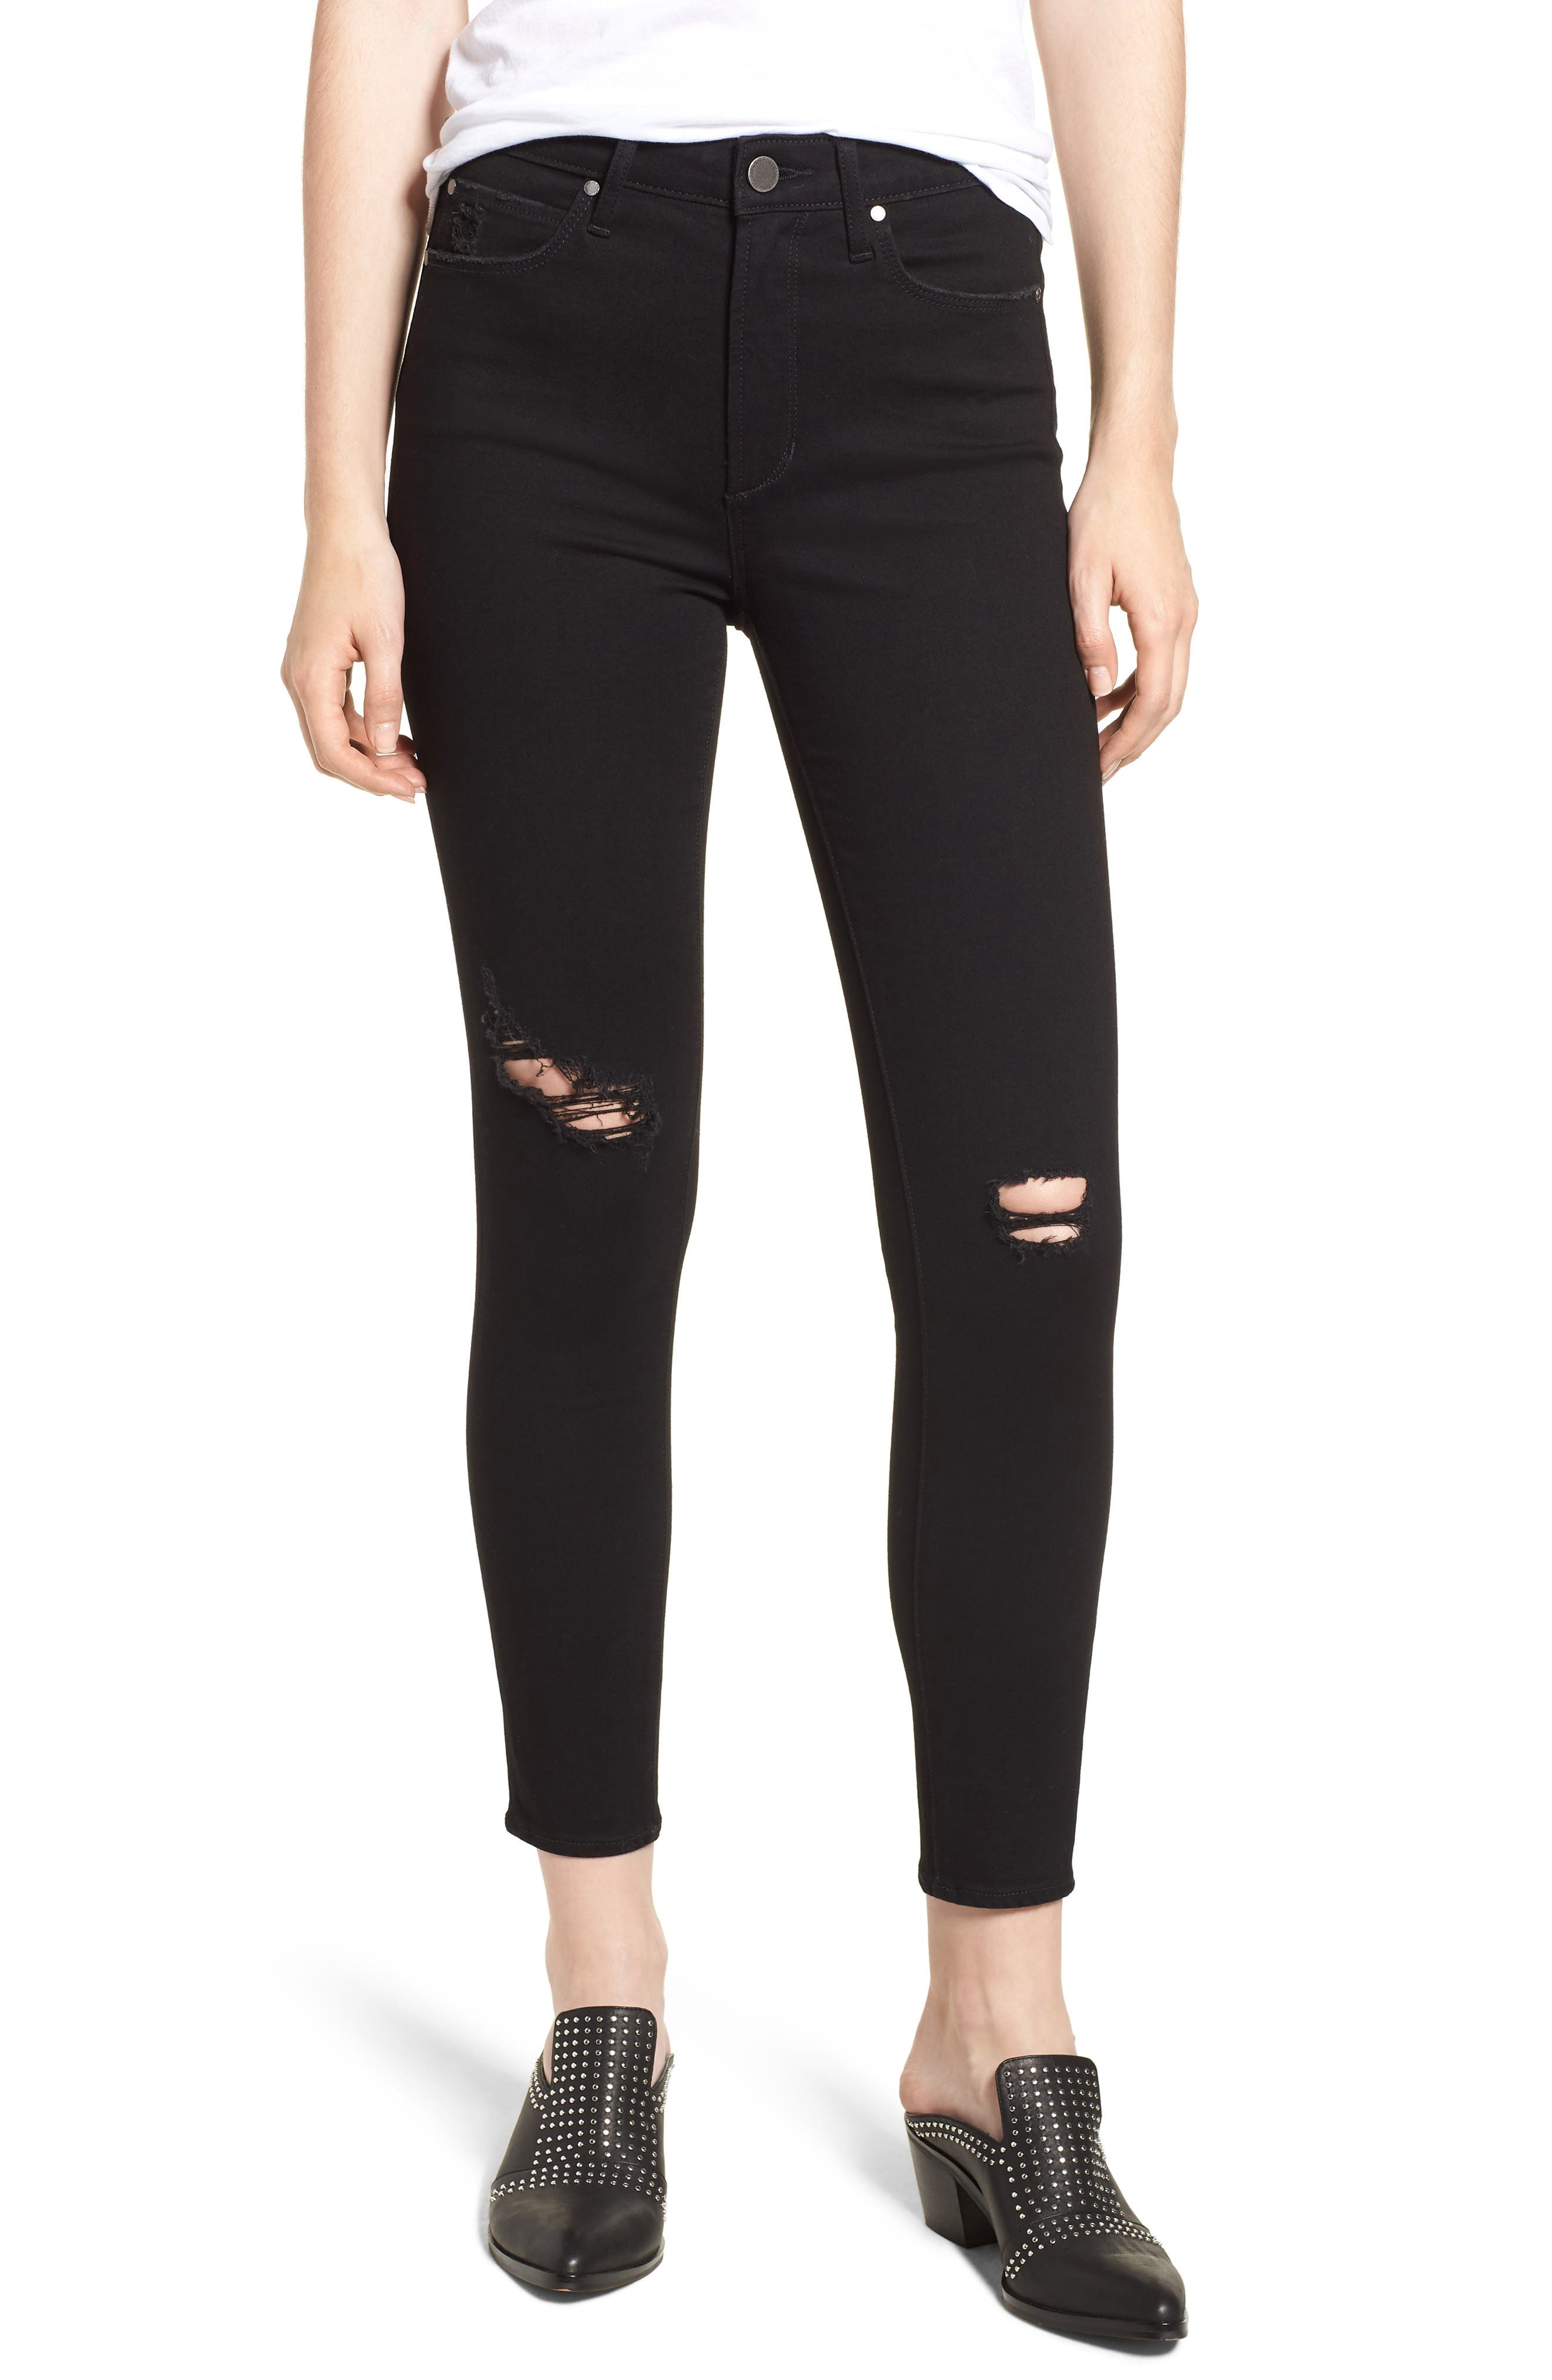 ARTICLES OF SOCIETY Heather Ripped High Rise Jeans, Main, color, 003